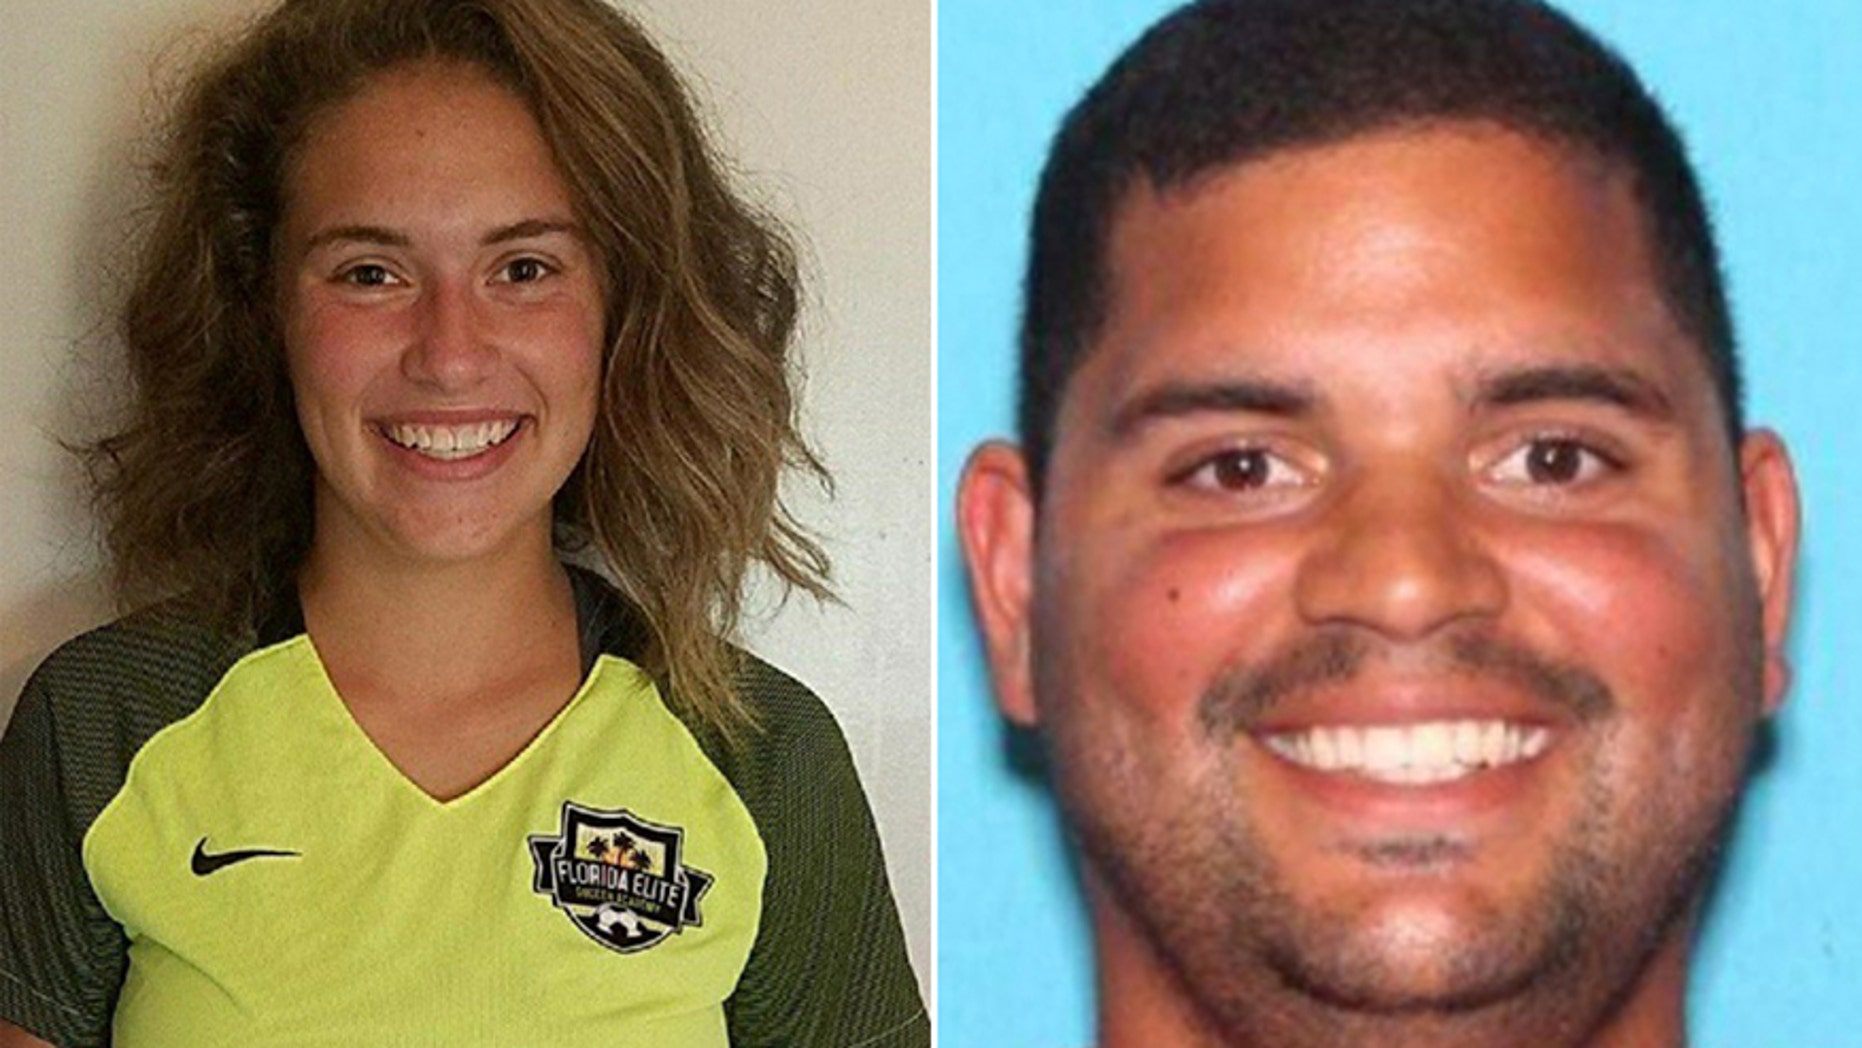 Caitlyn Frisina, left, was found in Syracuse, N.Y. with Rian Rodriguez, right, on Dec. 1.